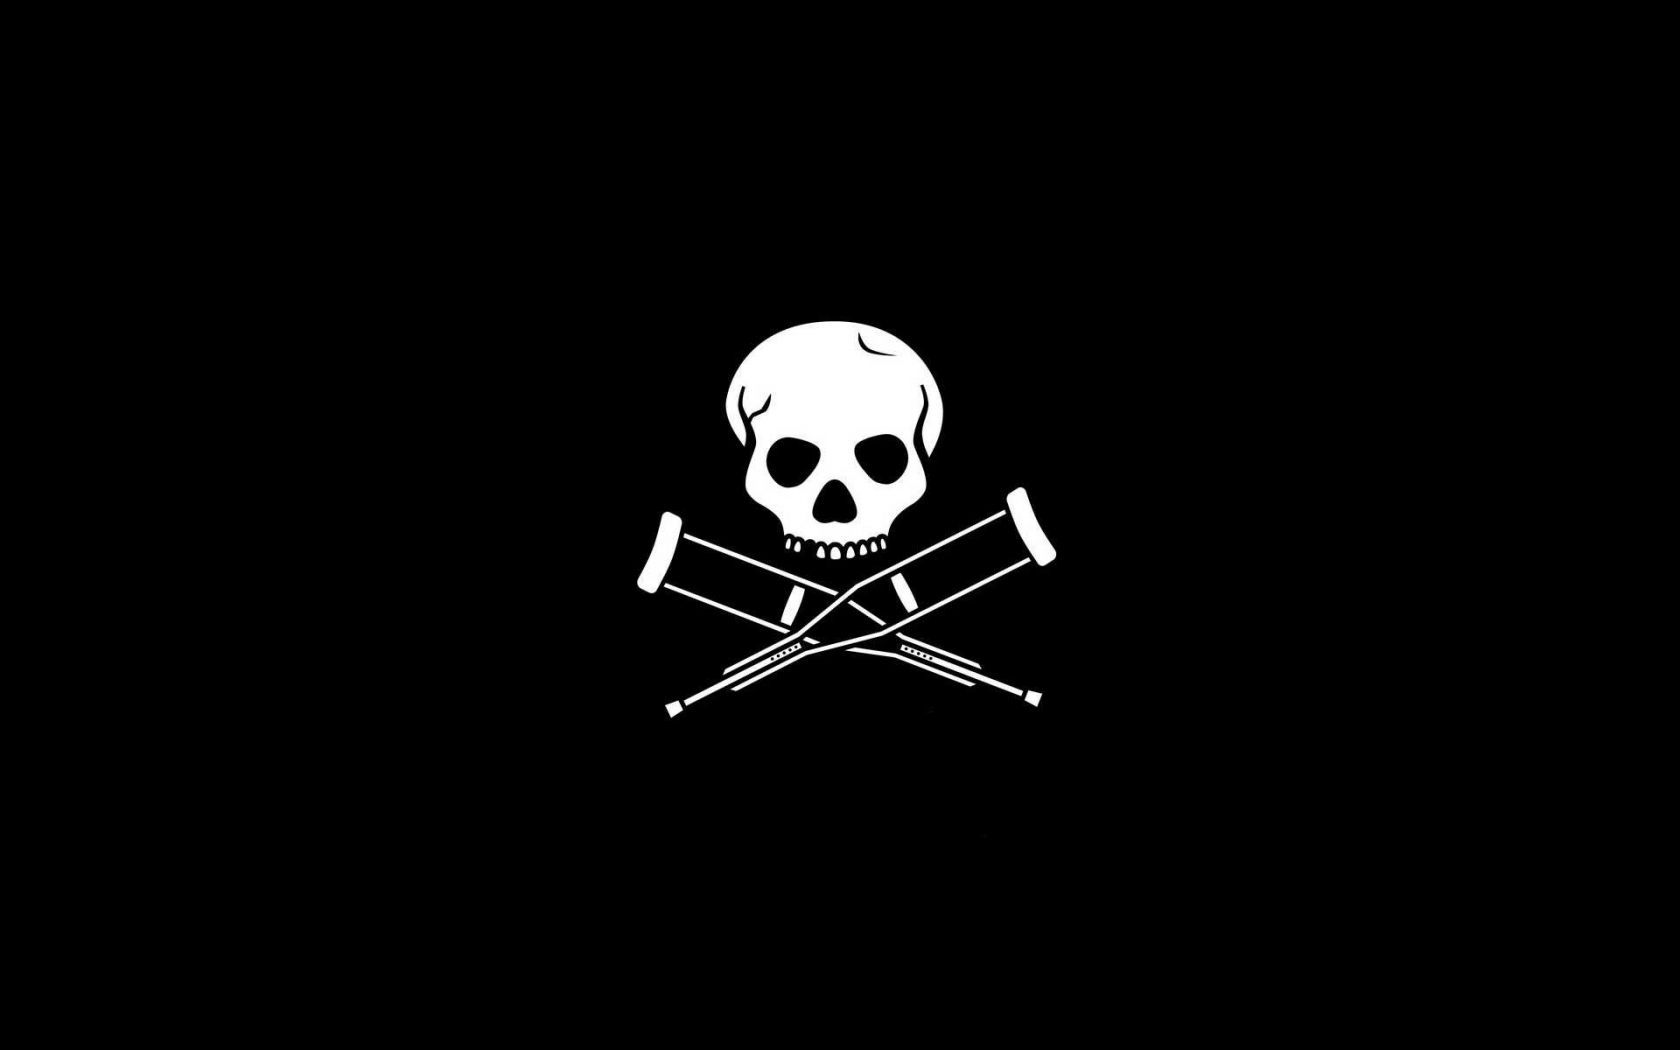 jackass skull logo hd wallpaper | download cool hd wallpapers here.